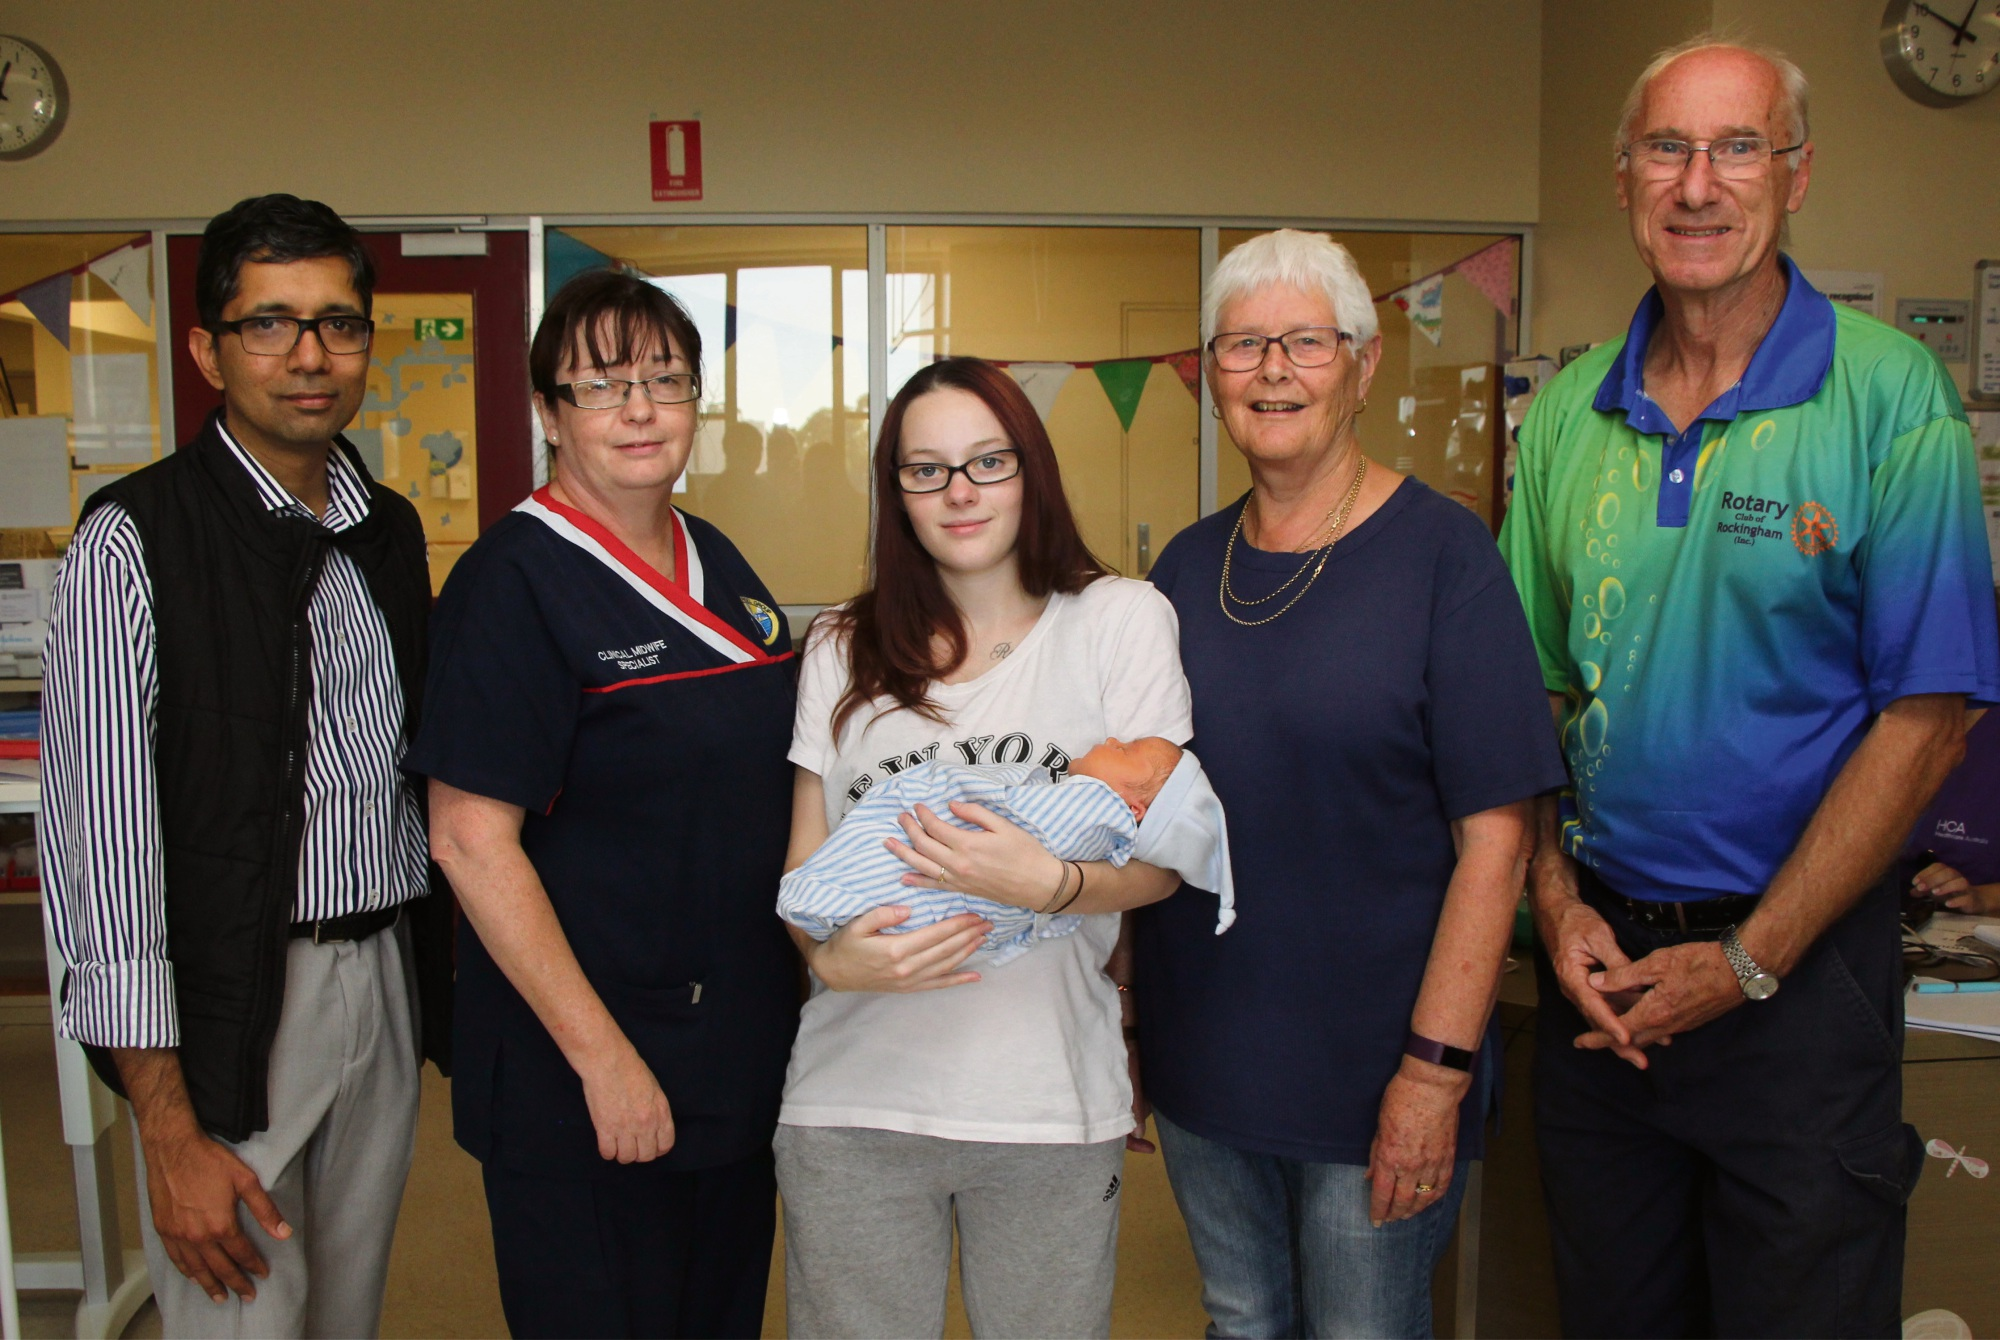 Paediatrics consultant Dr Murali Narayanan, clinical midwifery specialist Elaine Kottler, mum Emily Elliot with son Noah, Rockingham Rotary member Beth Phillips and Rockingham Rotary community services director Darrel Donavan.